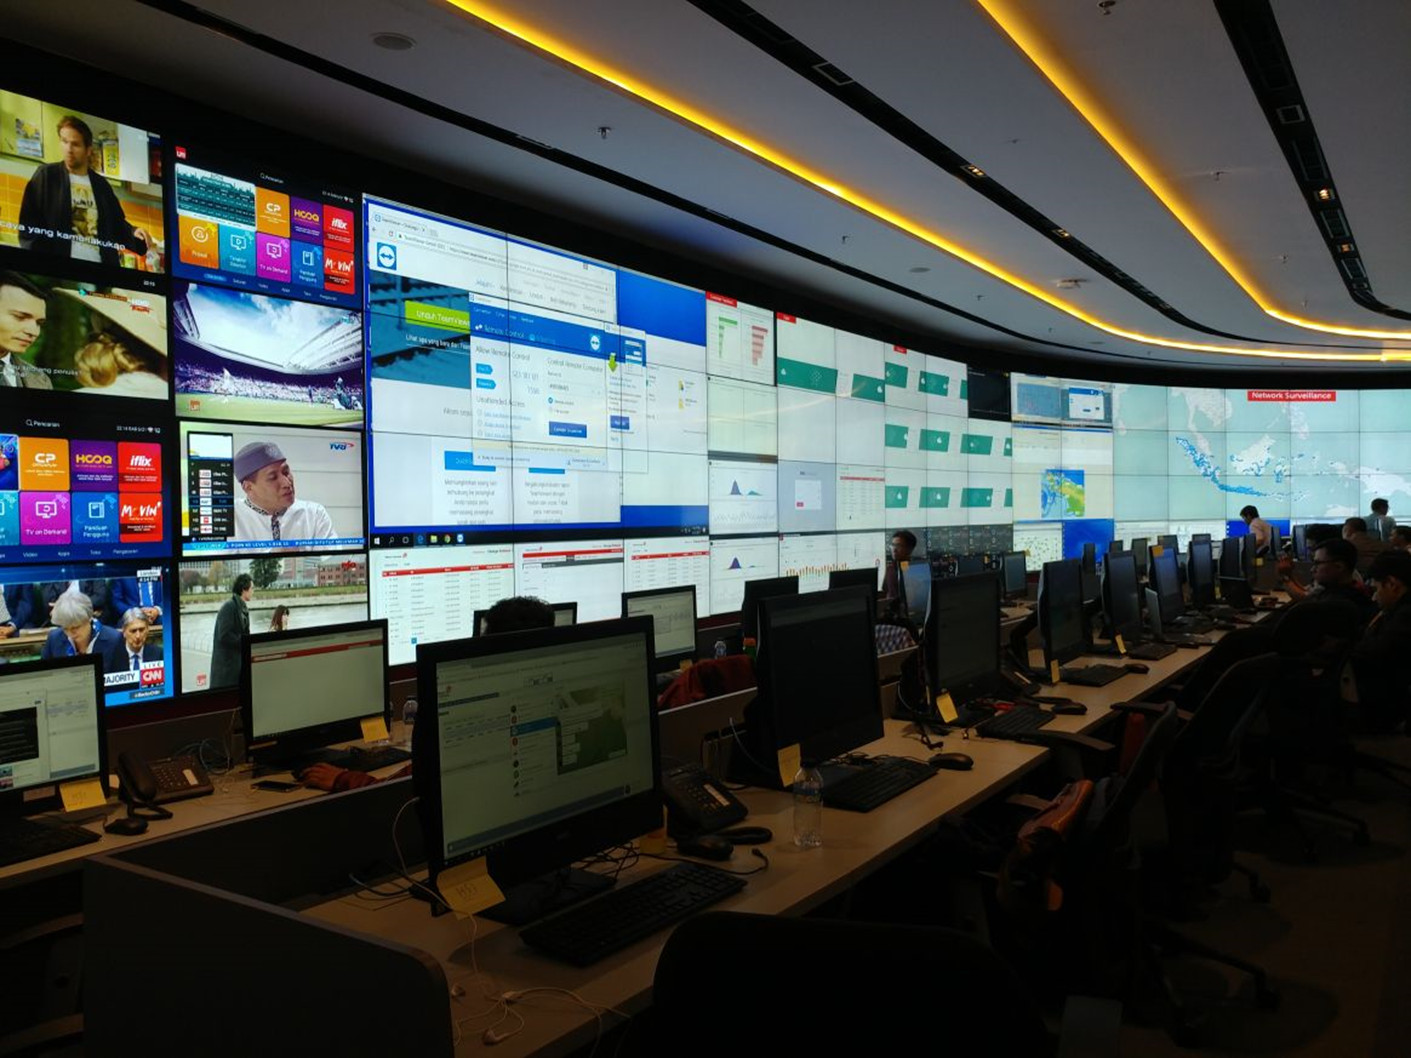 Telkom Intelligent Operation Center West Wing